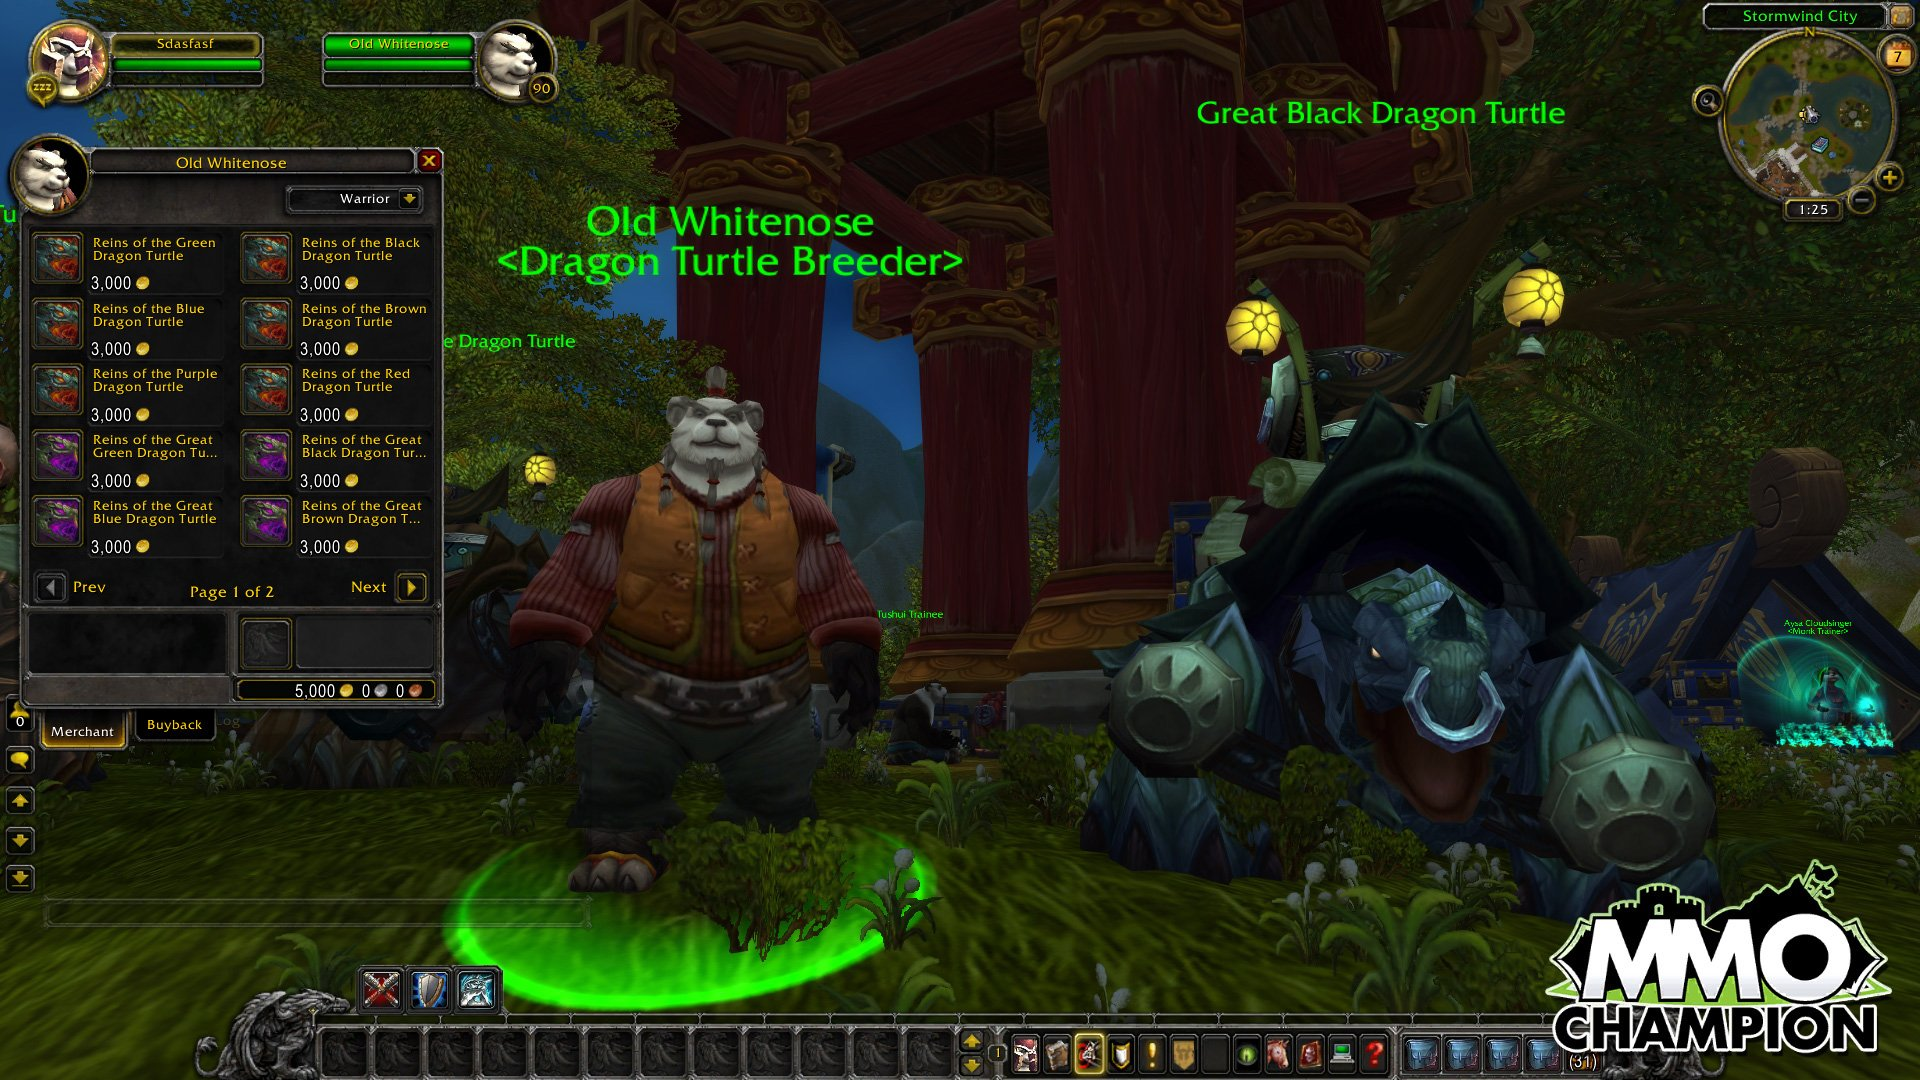 lvl 88 wow leveling guide